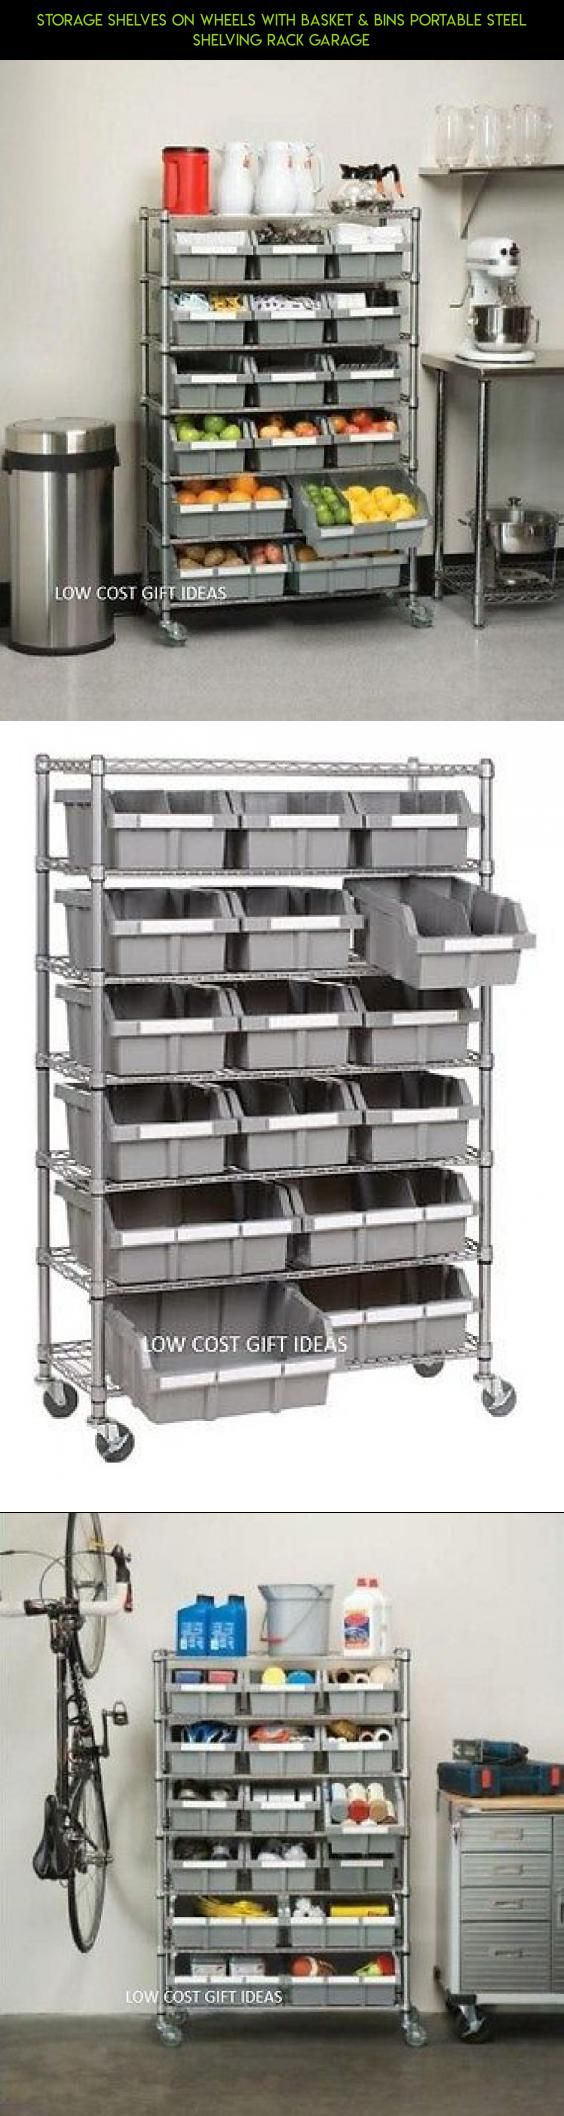 Storage Shelves On Wheels With Basket & Bins Portable Steel Shelving Rack Garage #wheels #shopping #technology #racing #gadgets #fpv #kit #racks #tech #products #drone #camera #with #storage #parts #plans